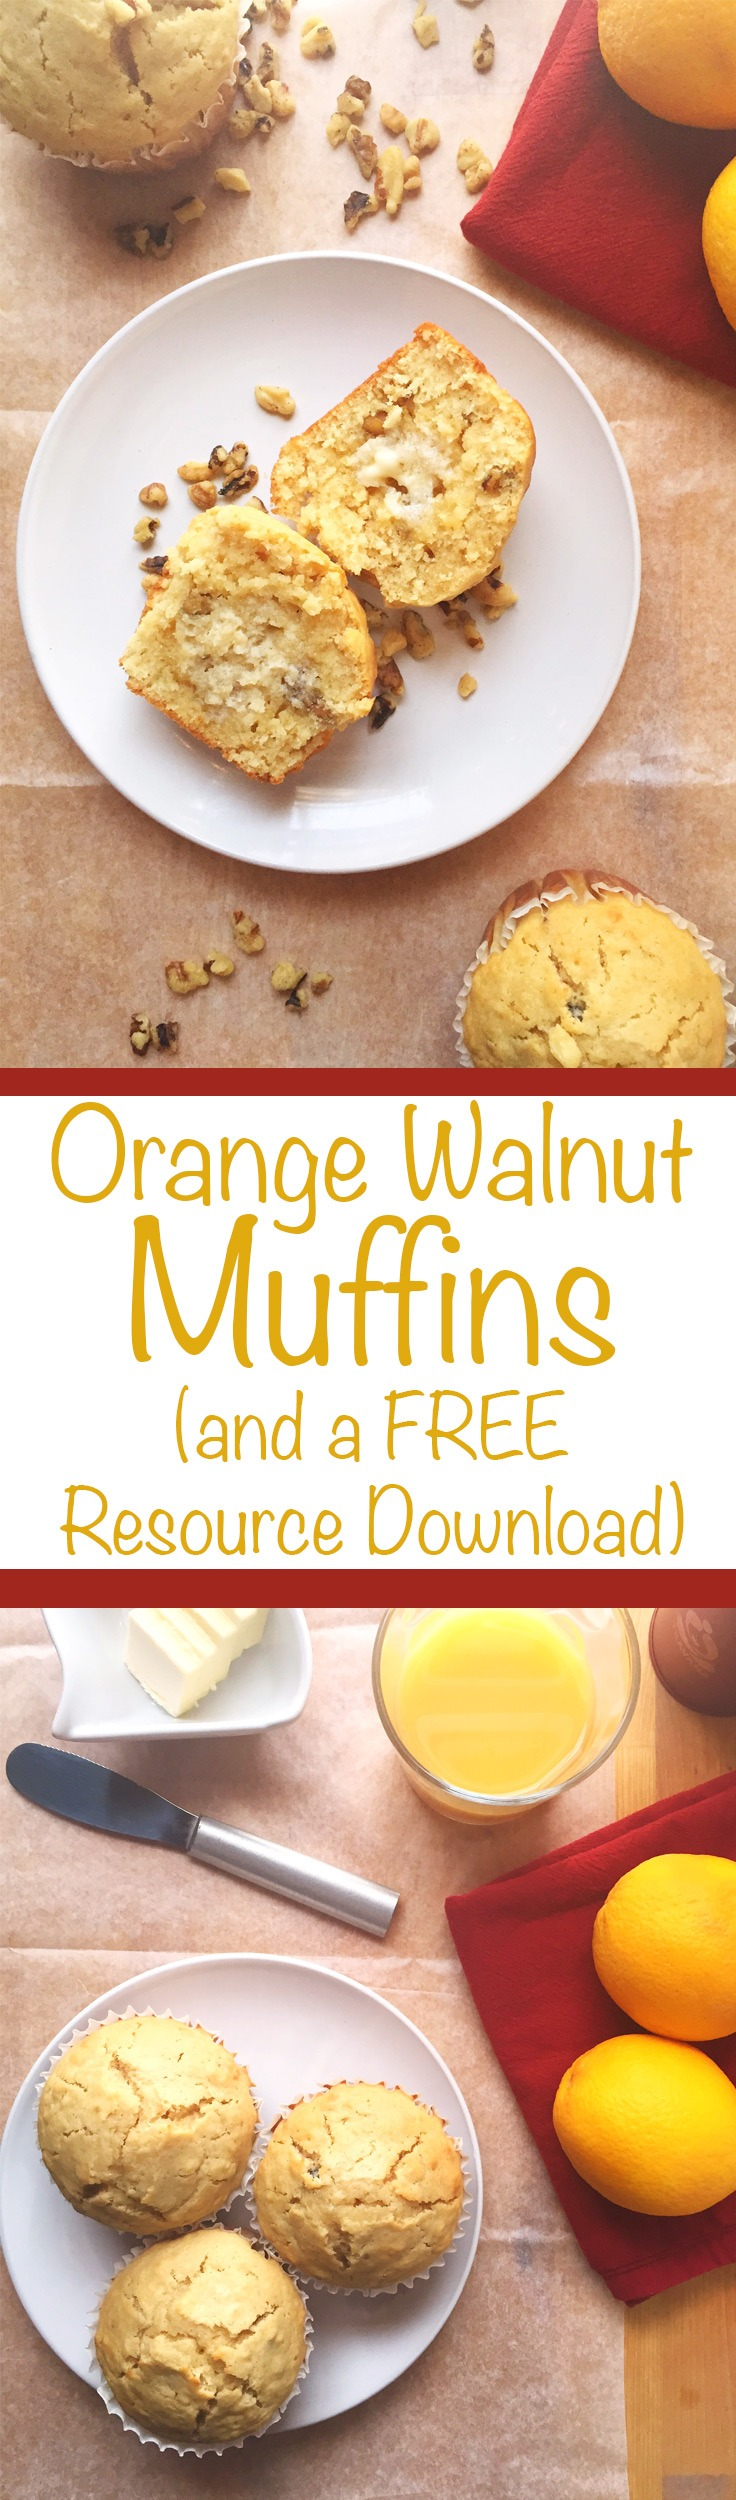 Orange Walnut Muffin Recipe (and a FREE Resource Download). Do you struggle getting your muffins to have high tops? How about making sure they're moist? In this Orange Walnut Muffin recipe post, we'll demonstrate how to make a moist, high-top muffin. We're even giving you a FREE Resource download for this recipe. Click through to get the goods!